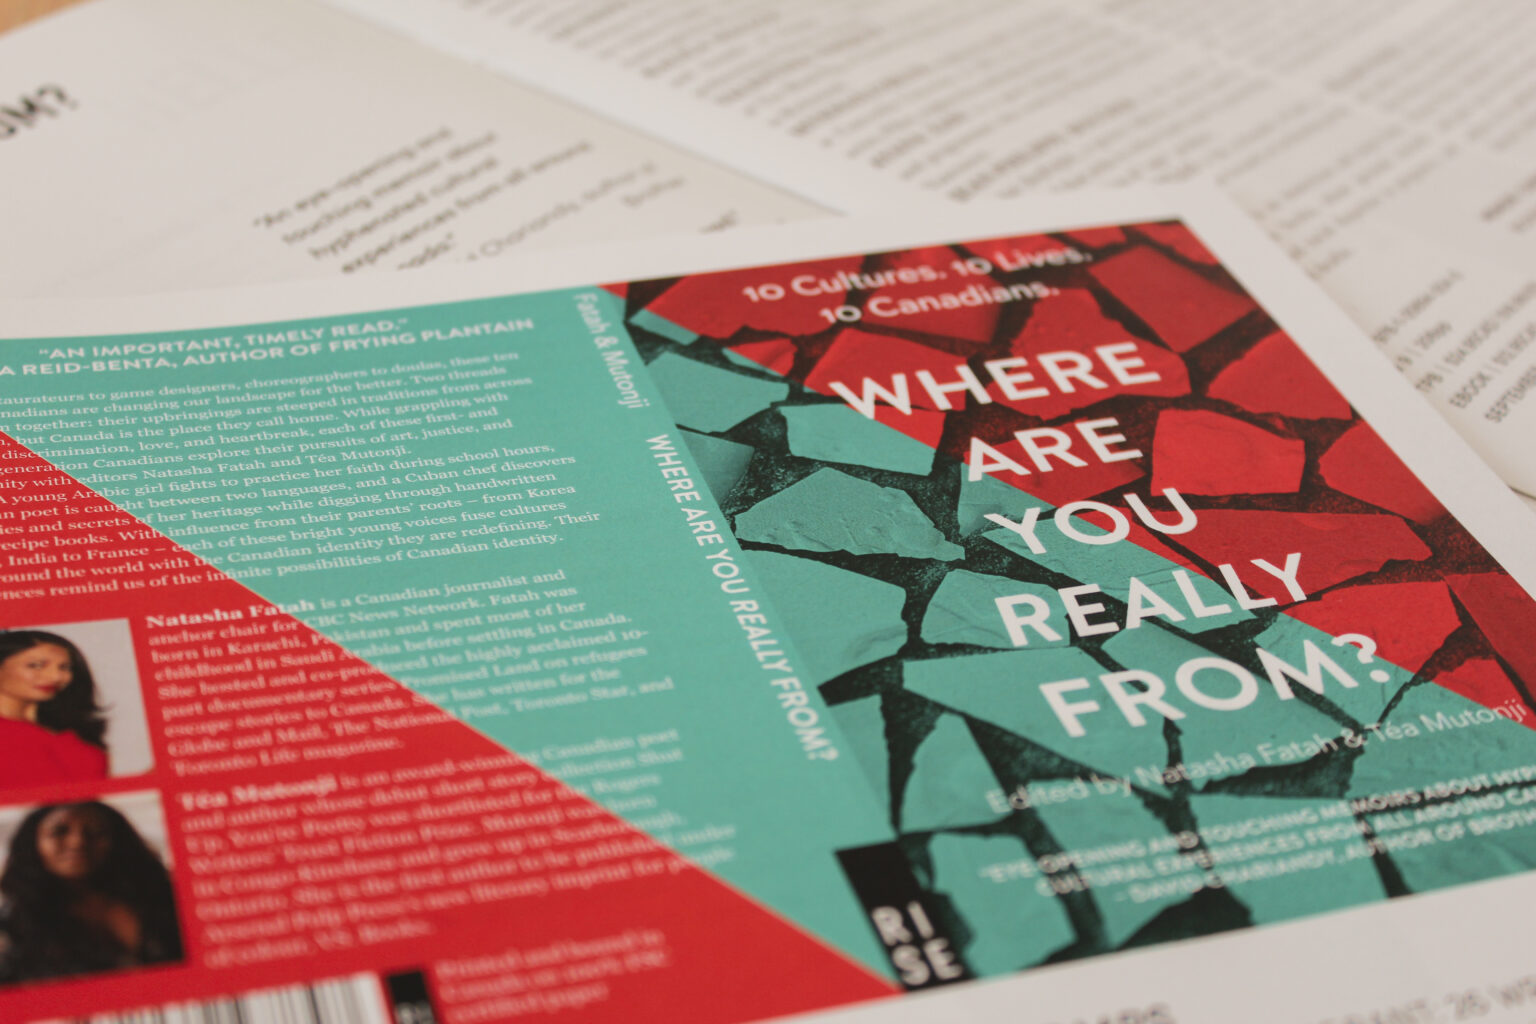 RISE project materials – Where Are You Really From cover